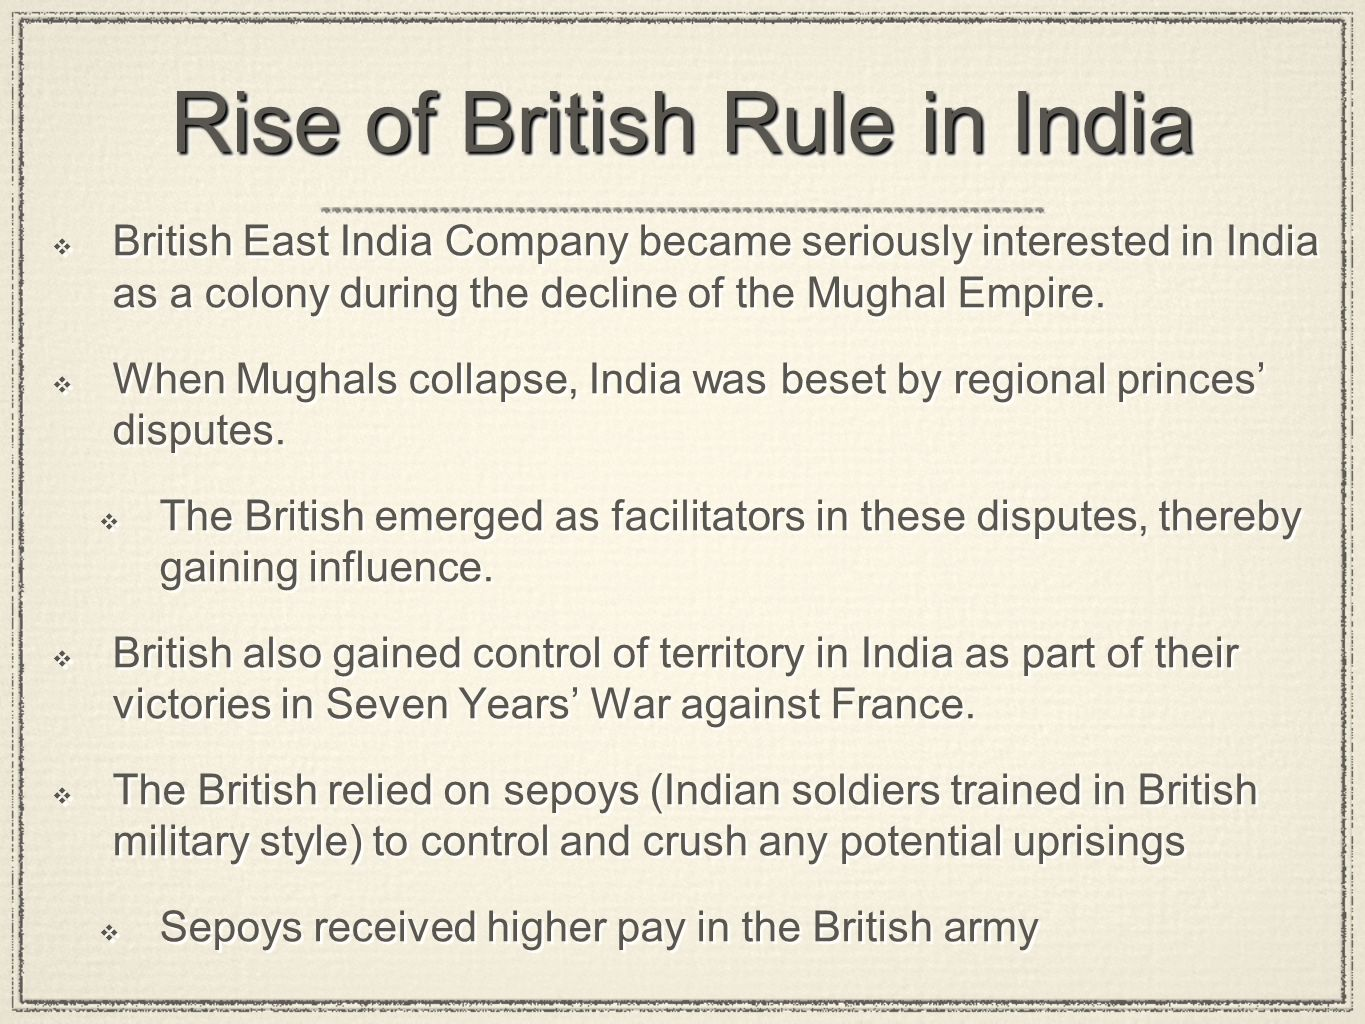 Rise of British Rule in India